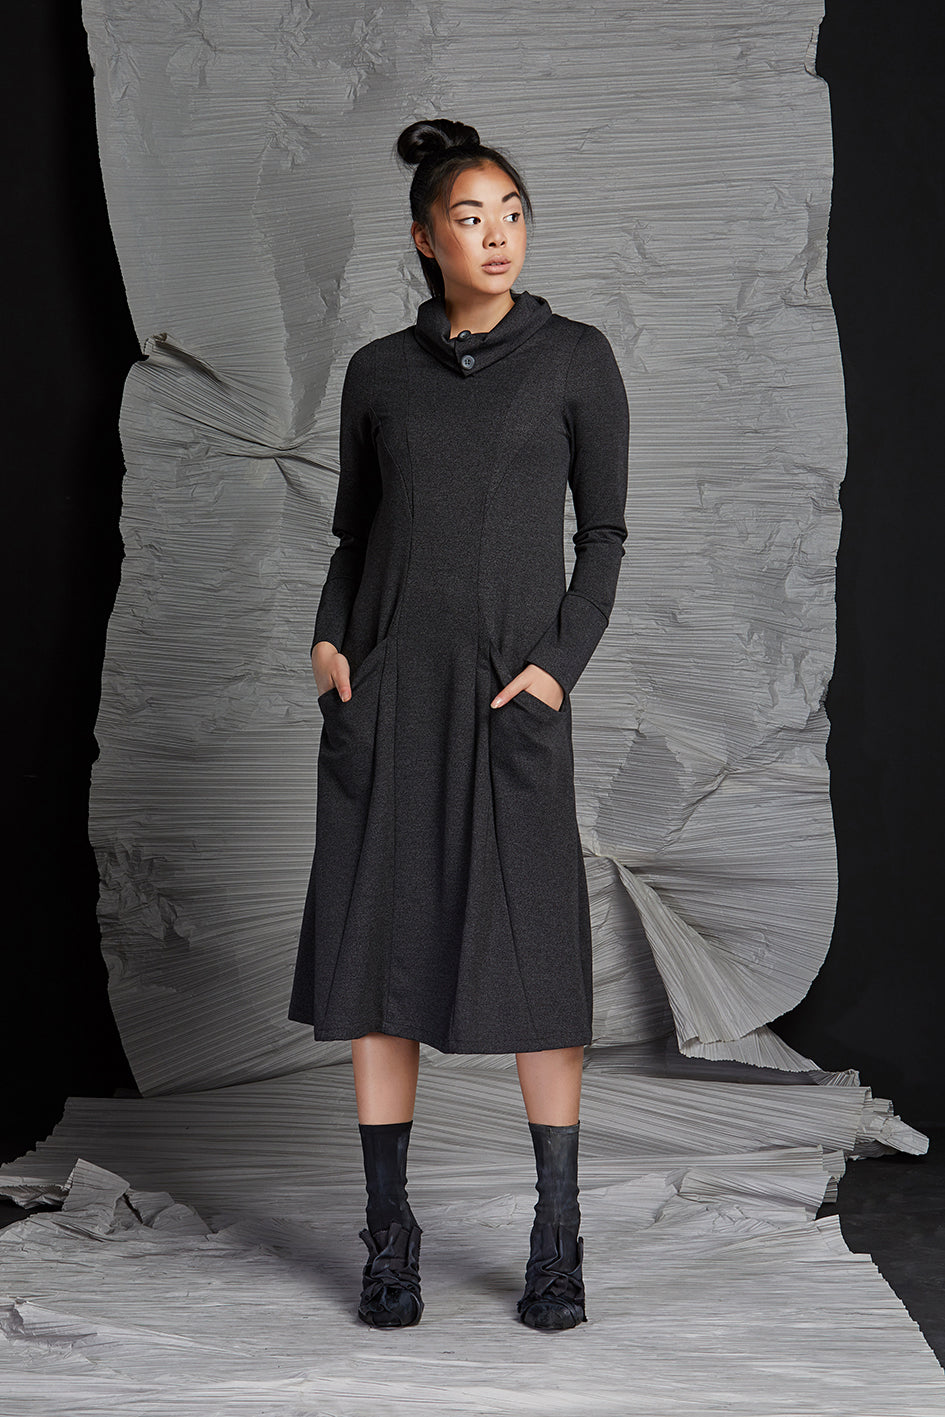 LINEA COWL NECK DRESS - GRAPHITE